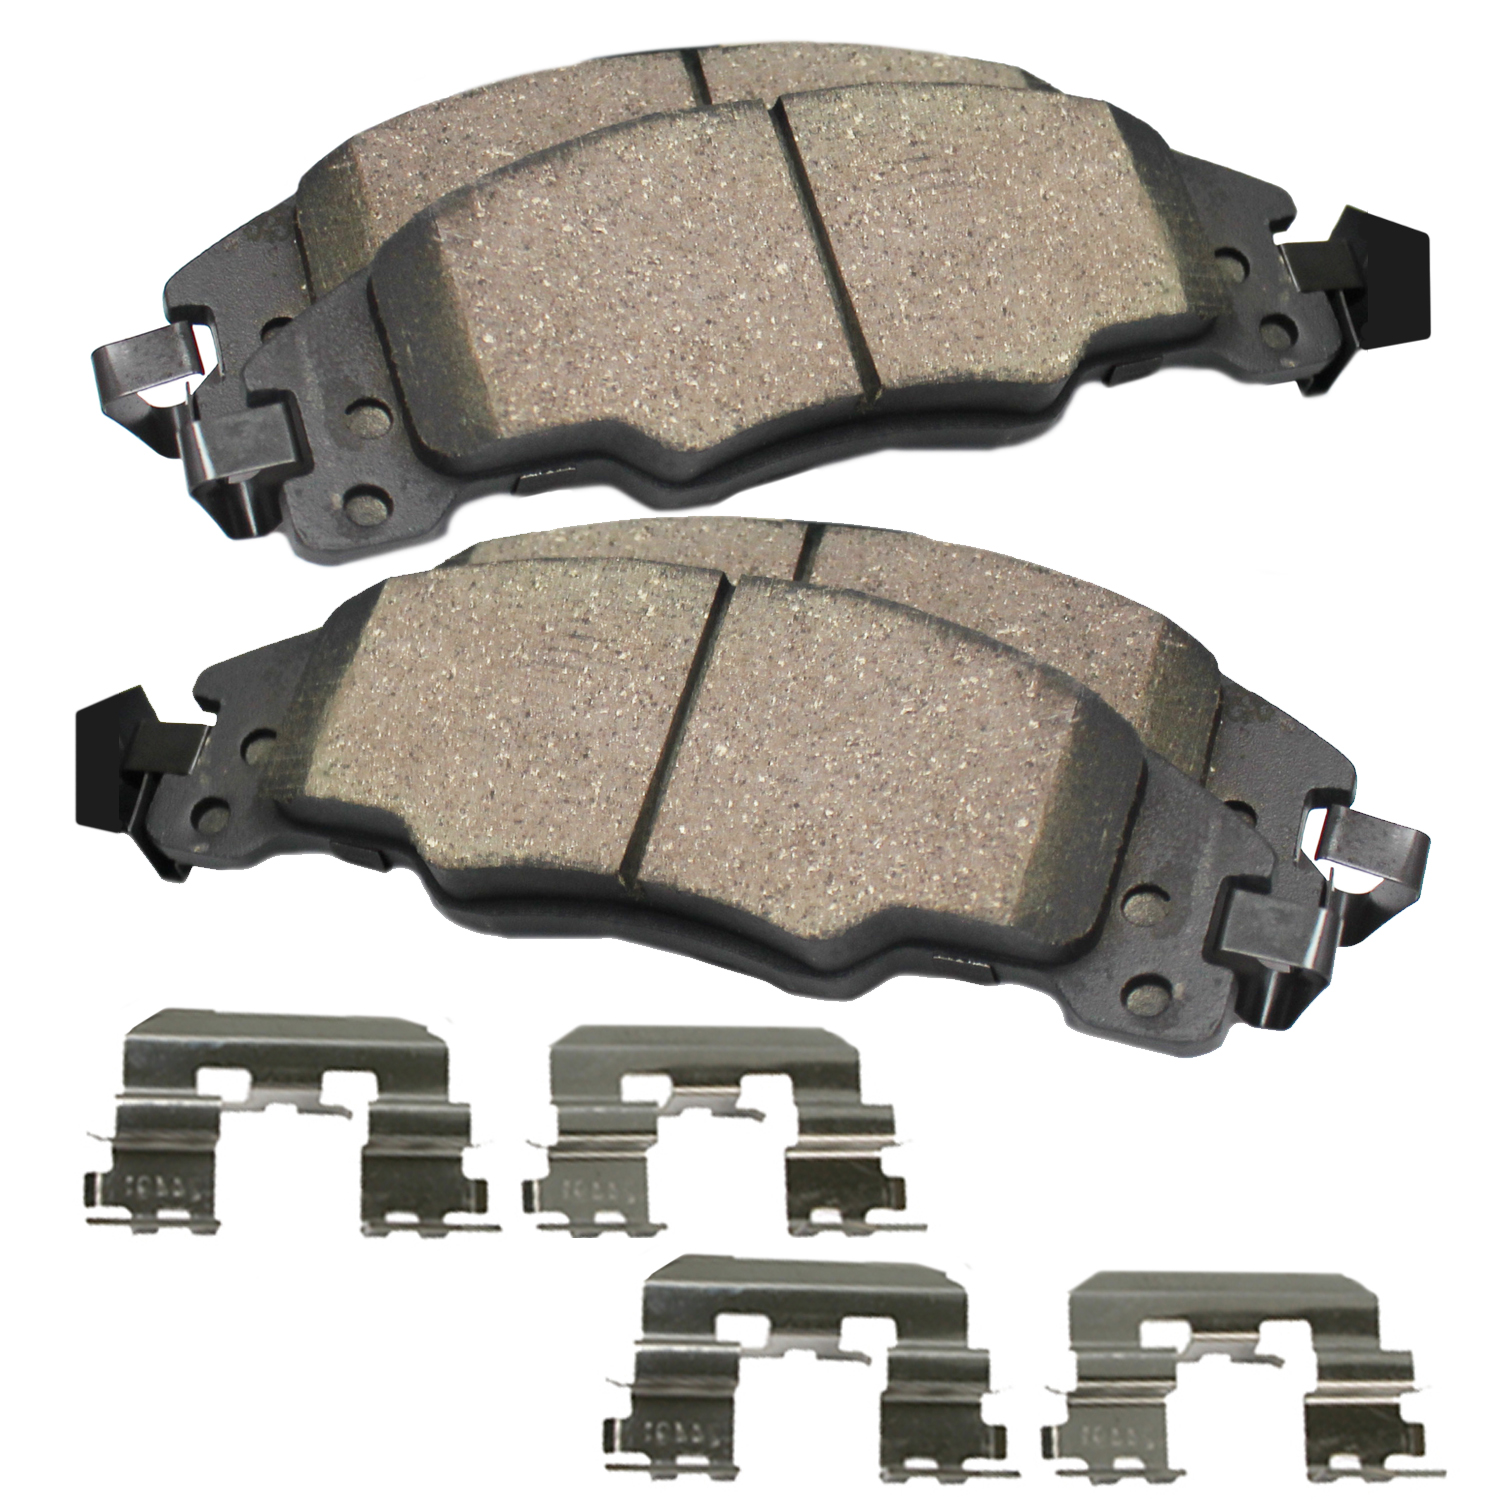 Rear Ceramic Brake Pads w/Clips for 2005-2012 Acura RL